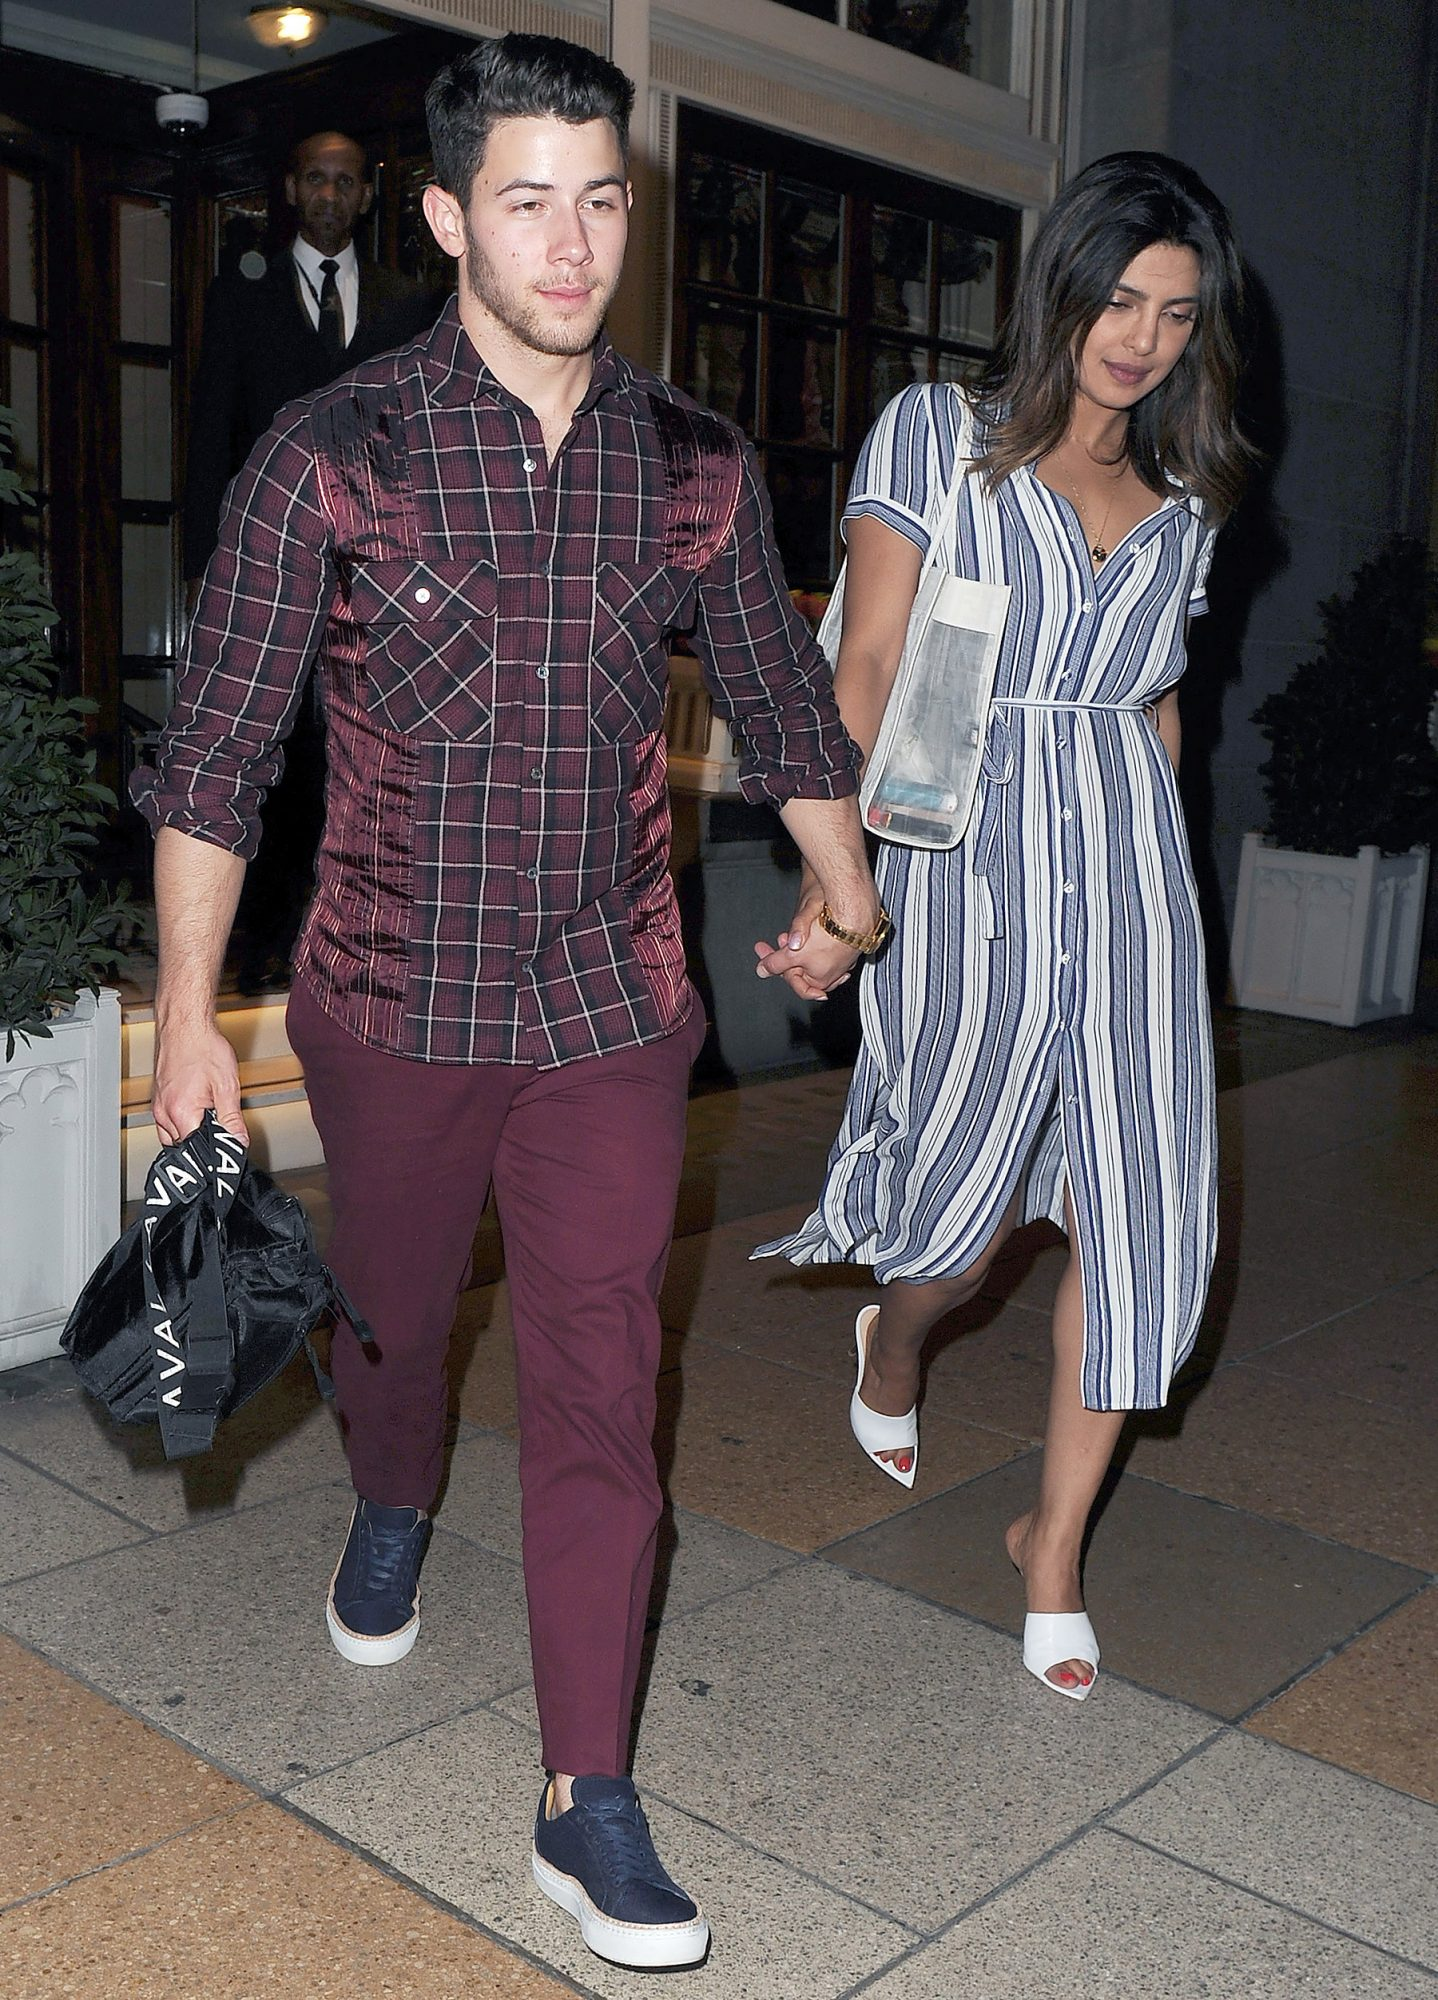 Nick Jonas and Priyanka Chopra Enjoy a Night Out at 34 restaurant, and then the Ritz Casino in Mayfair, London.